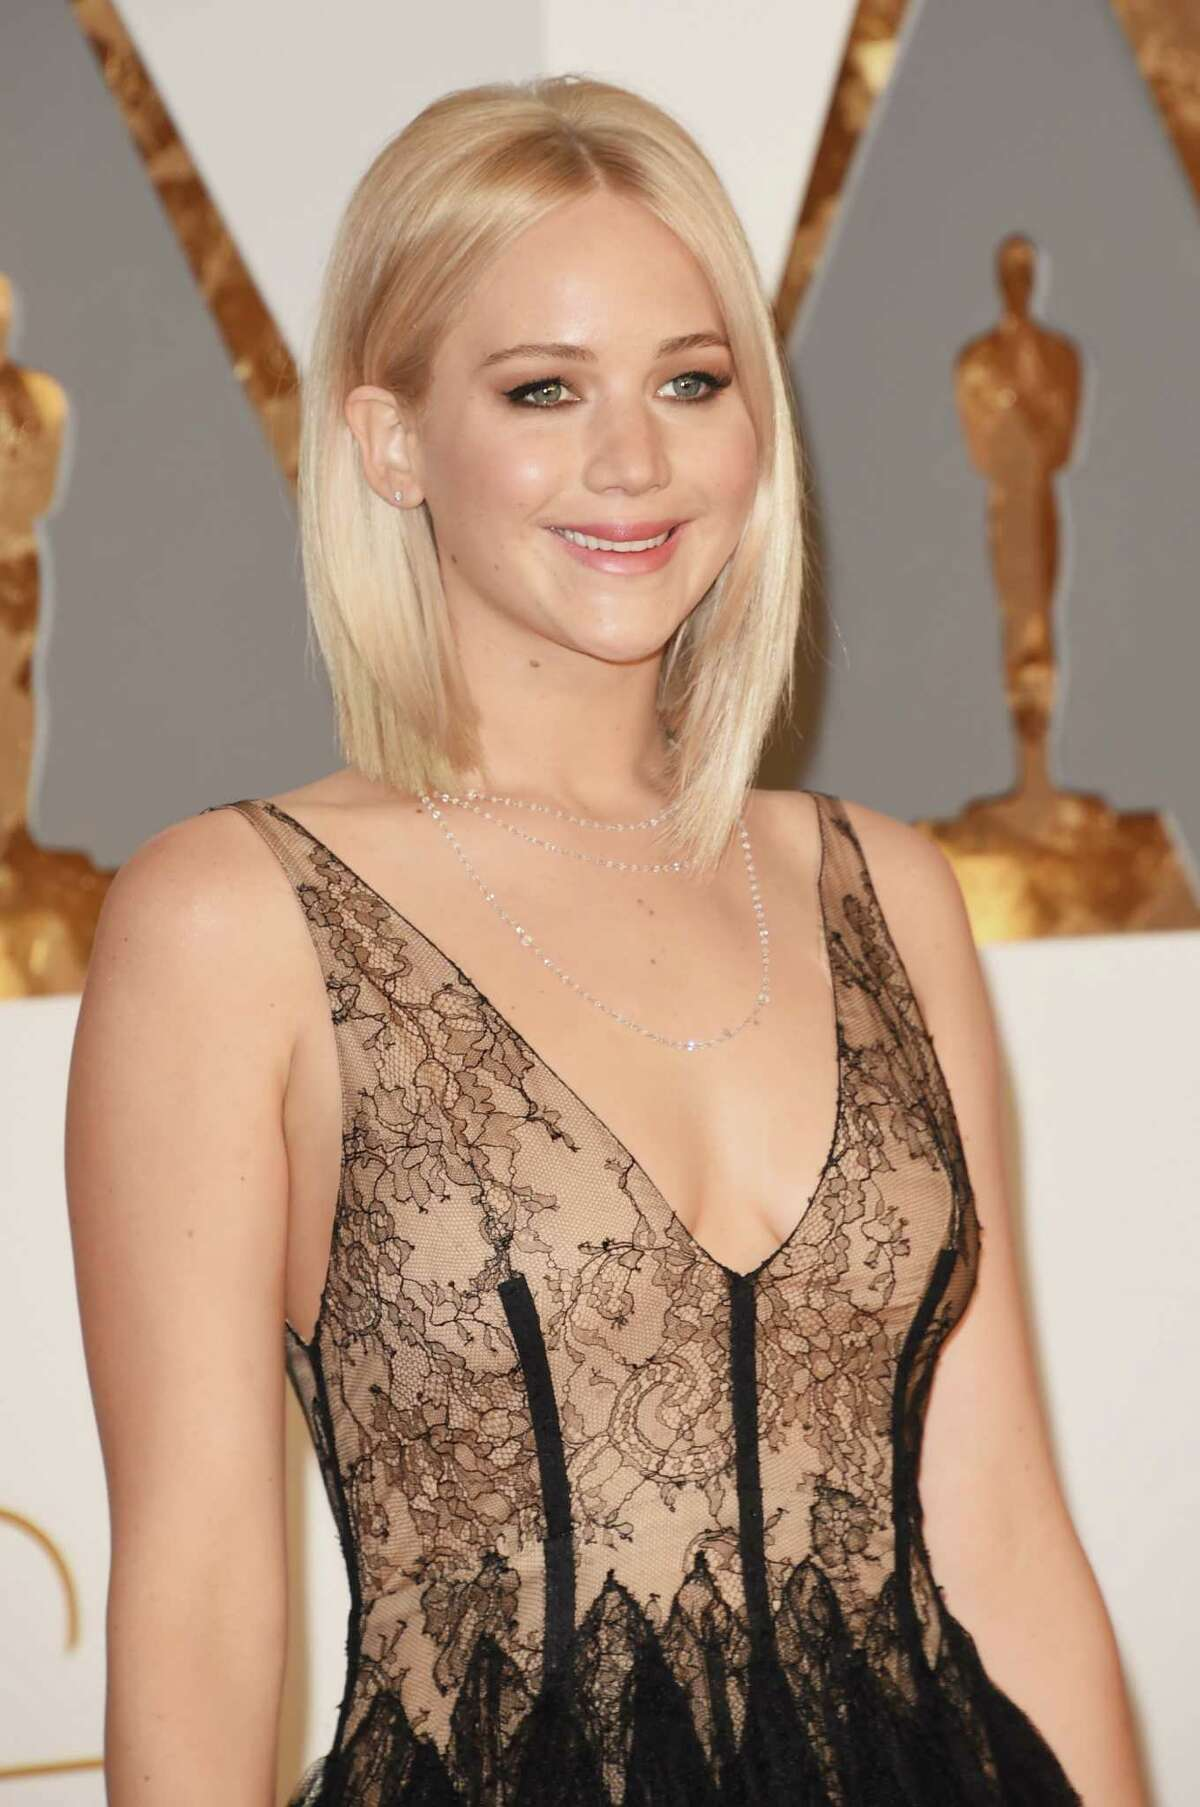 Jennifer Lawrence The Oscar-winning actress agrees with Hawking. She's not keen on space probes carrying data about Earth.